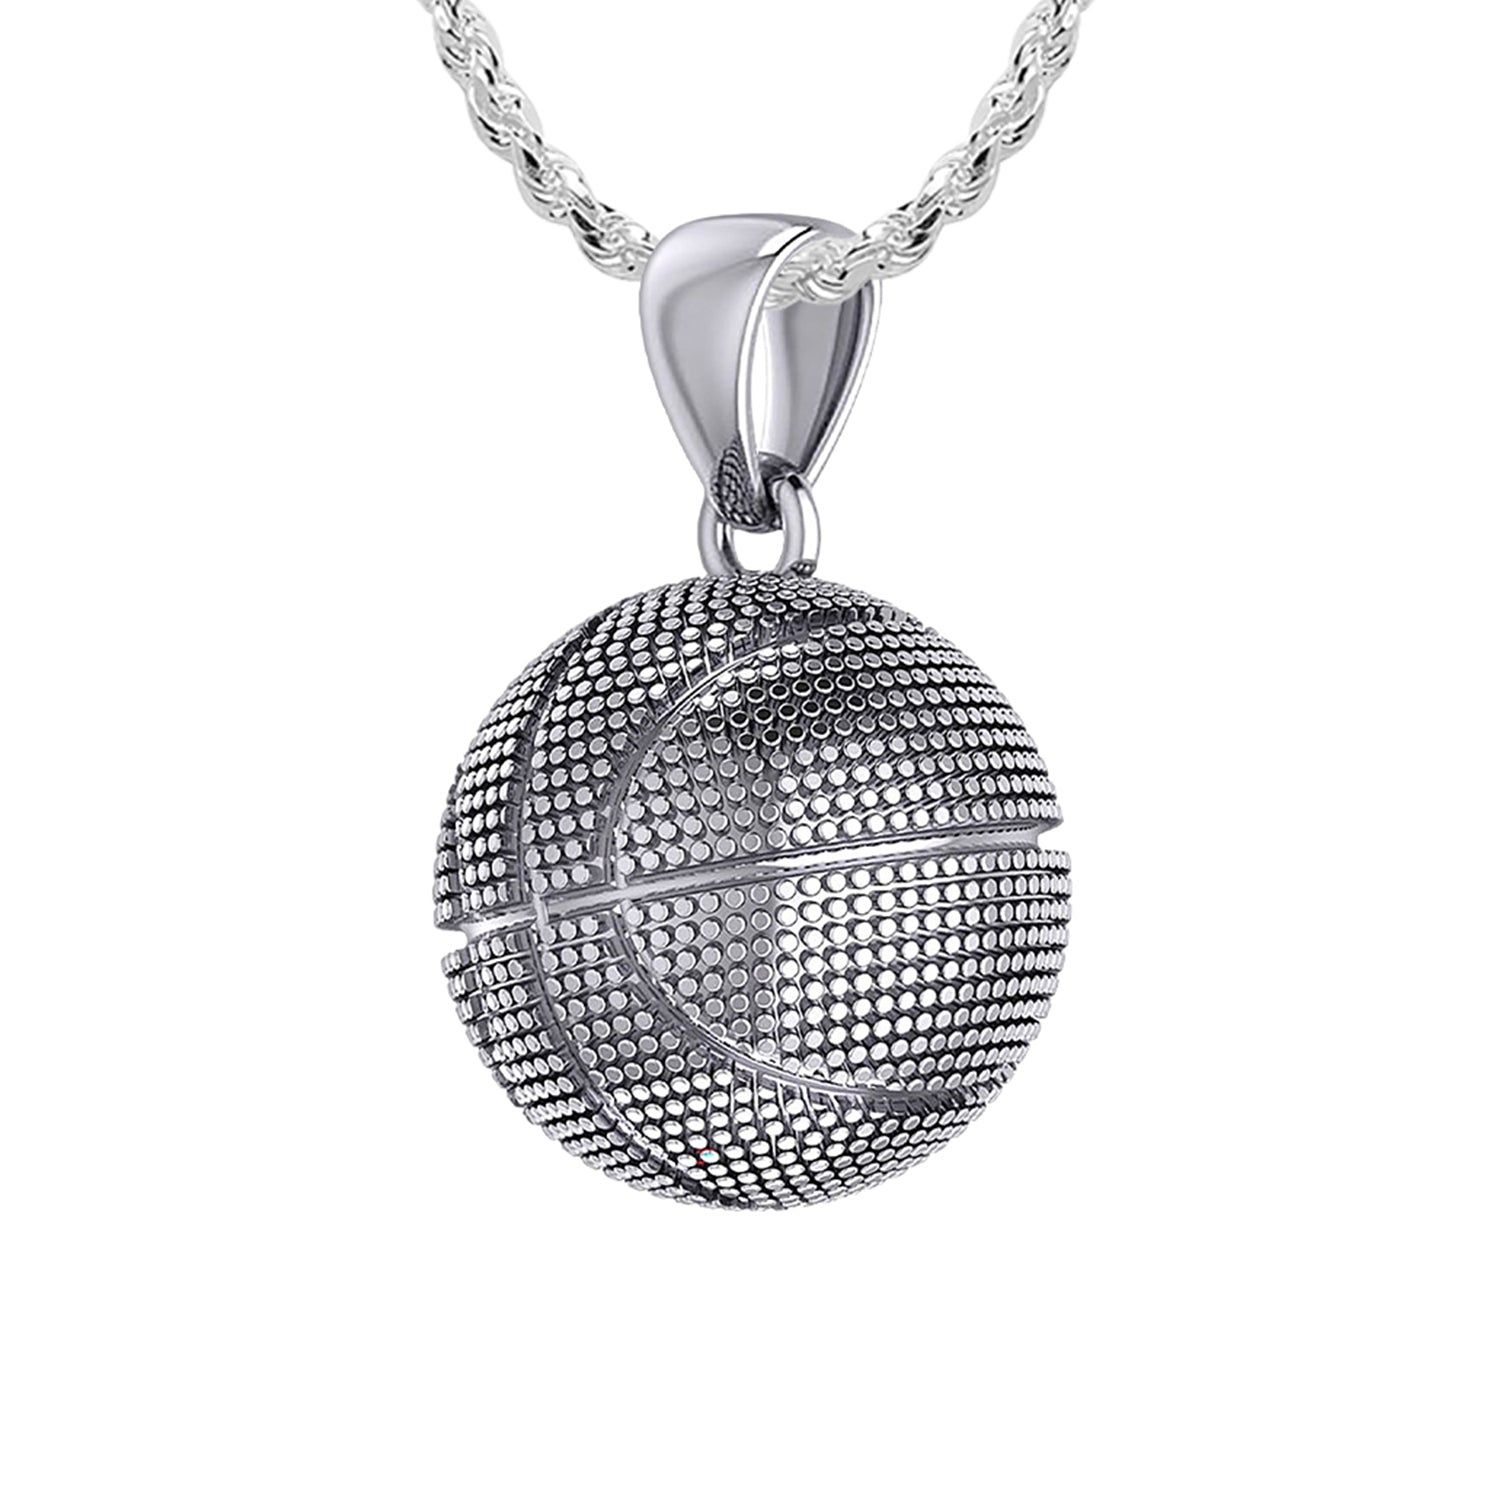 Basketball Necklace In Sterling Silver - 1.10mm Rope Chain